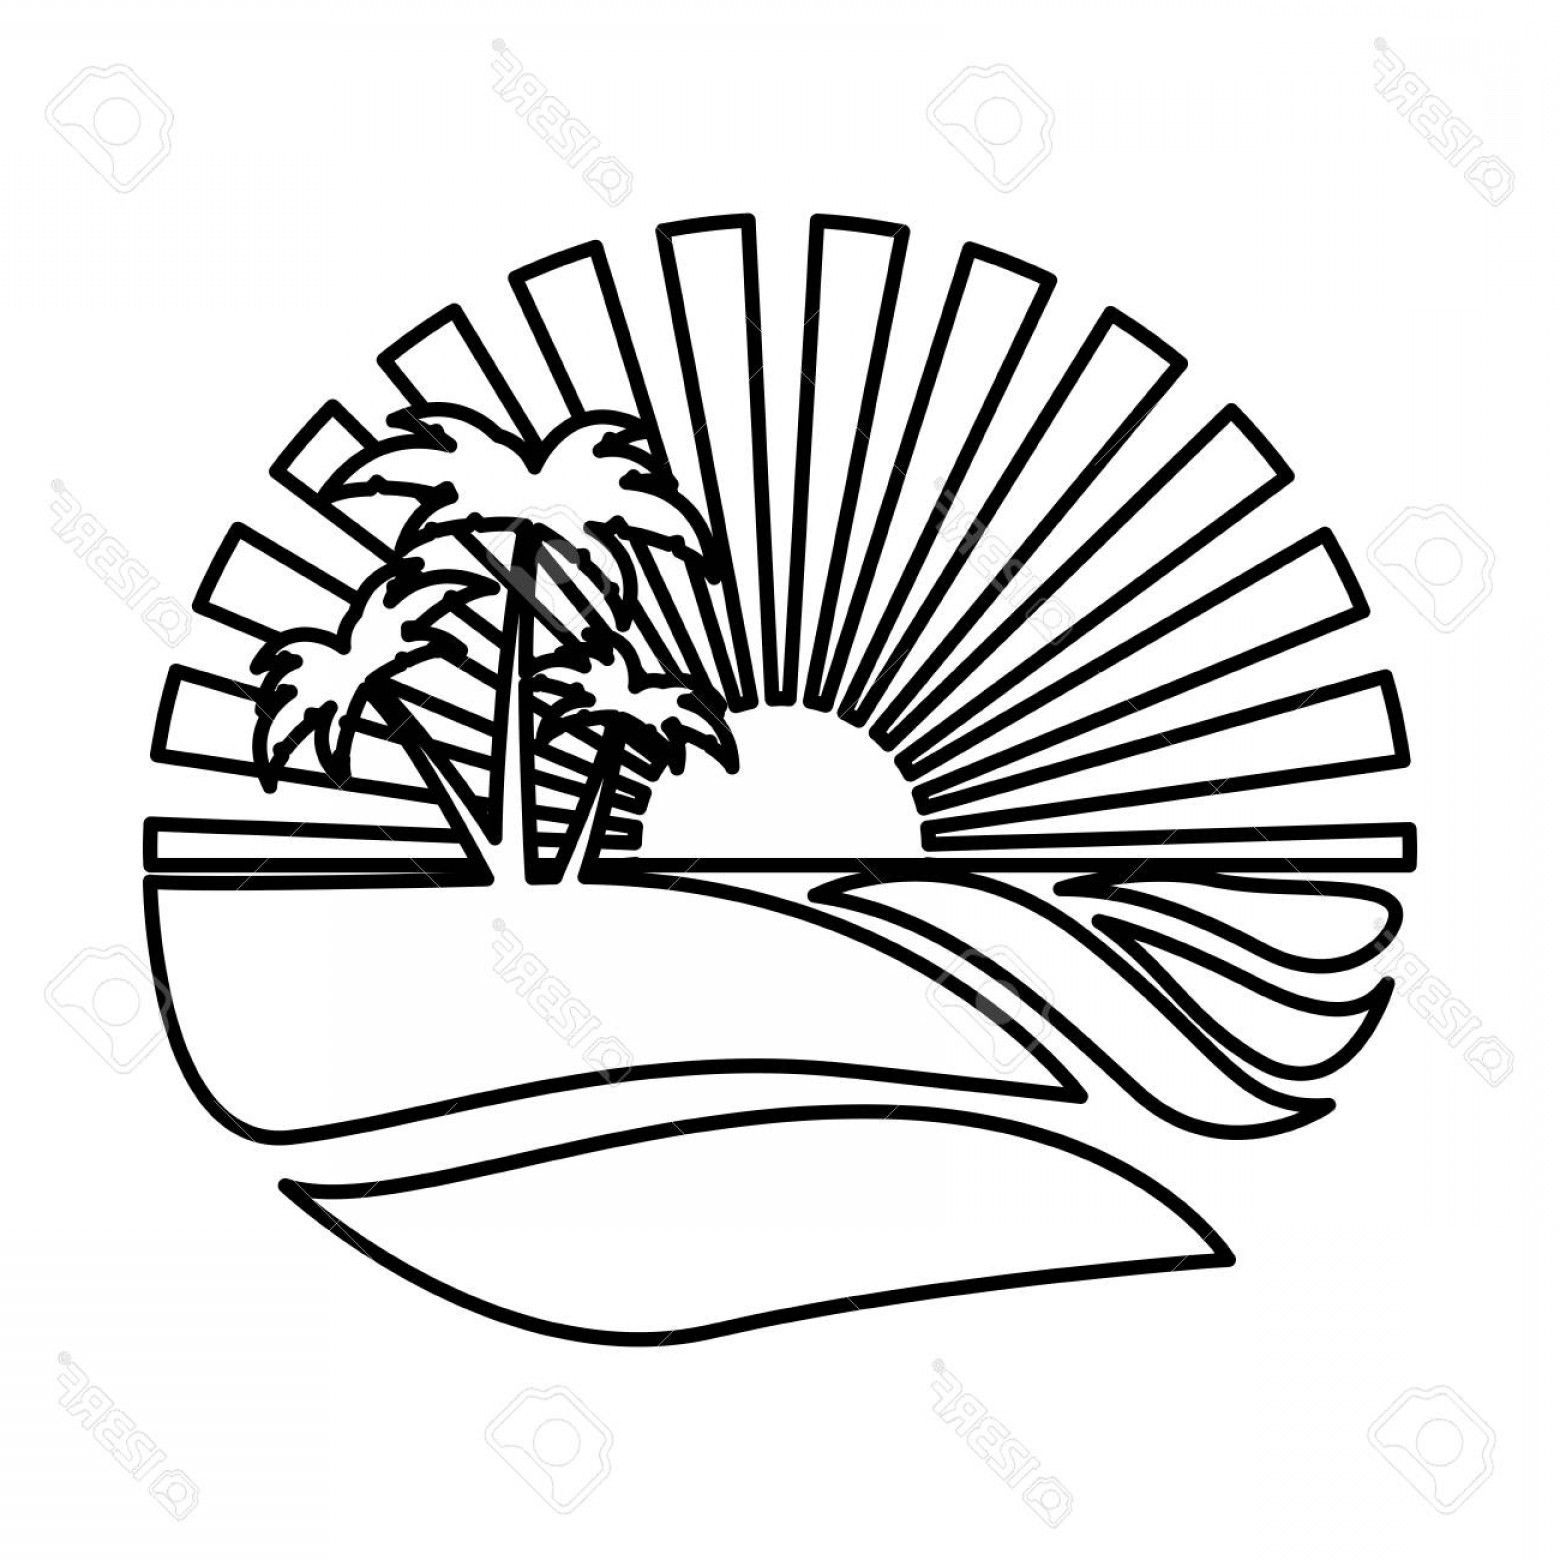 Sunset Beach Vector Outline: Photostock Vector Silhouette Circular Background Sunset In The Ocean With Beach And Palms Vector Illustration